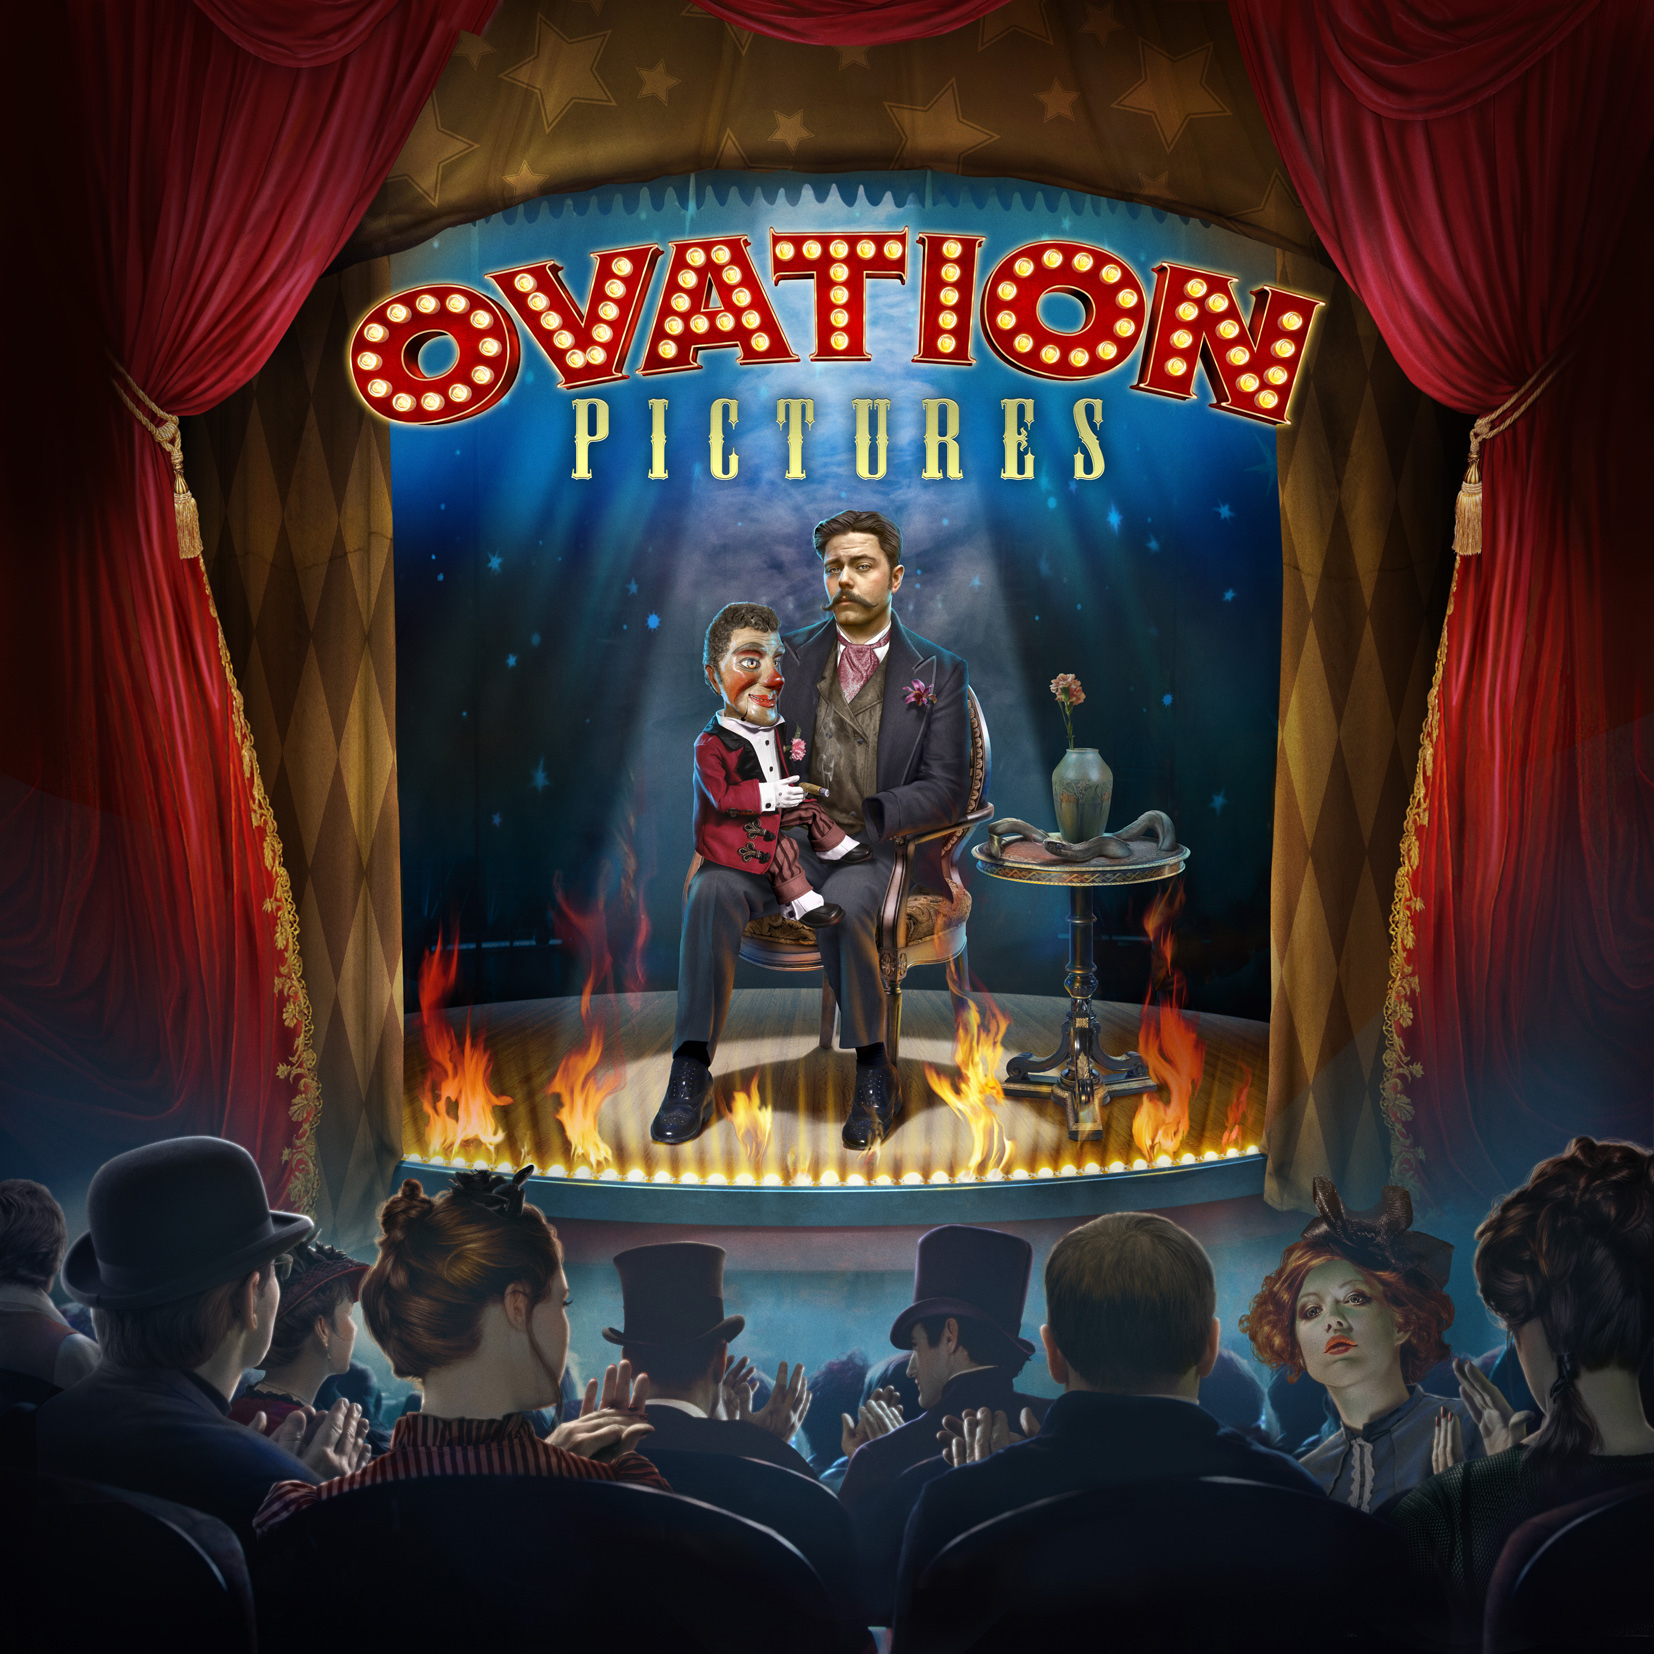 Ovation Pictures